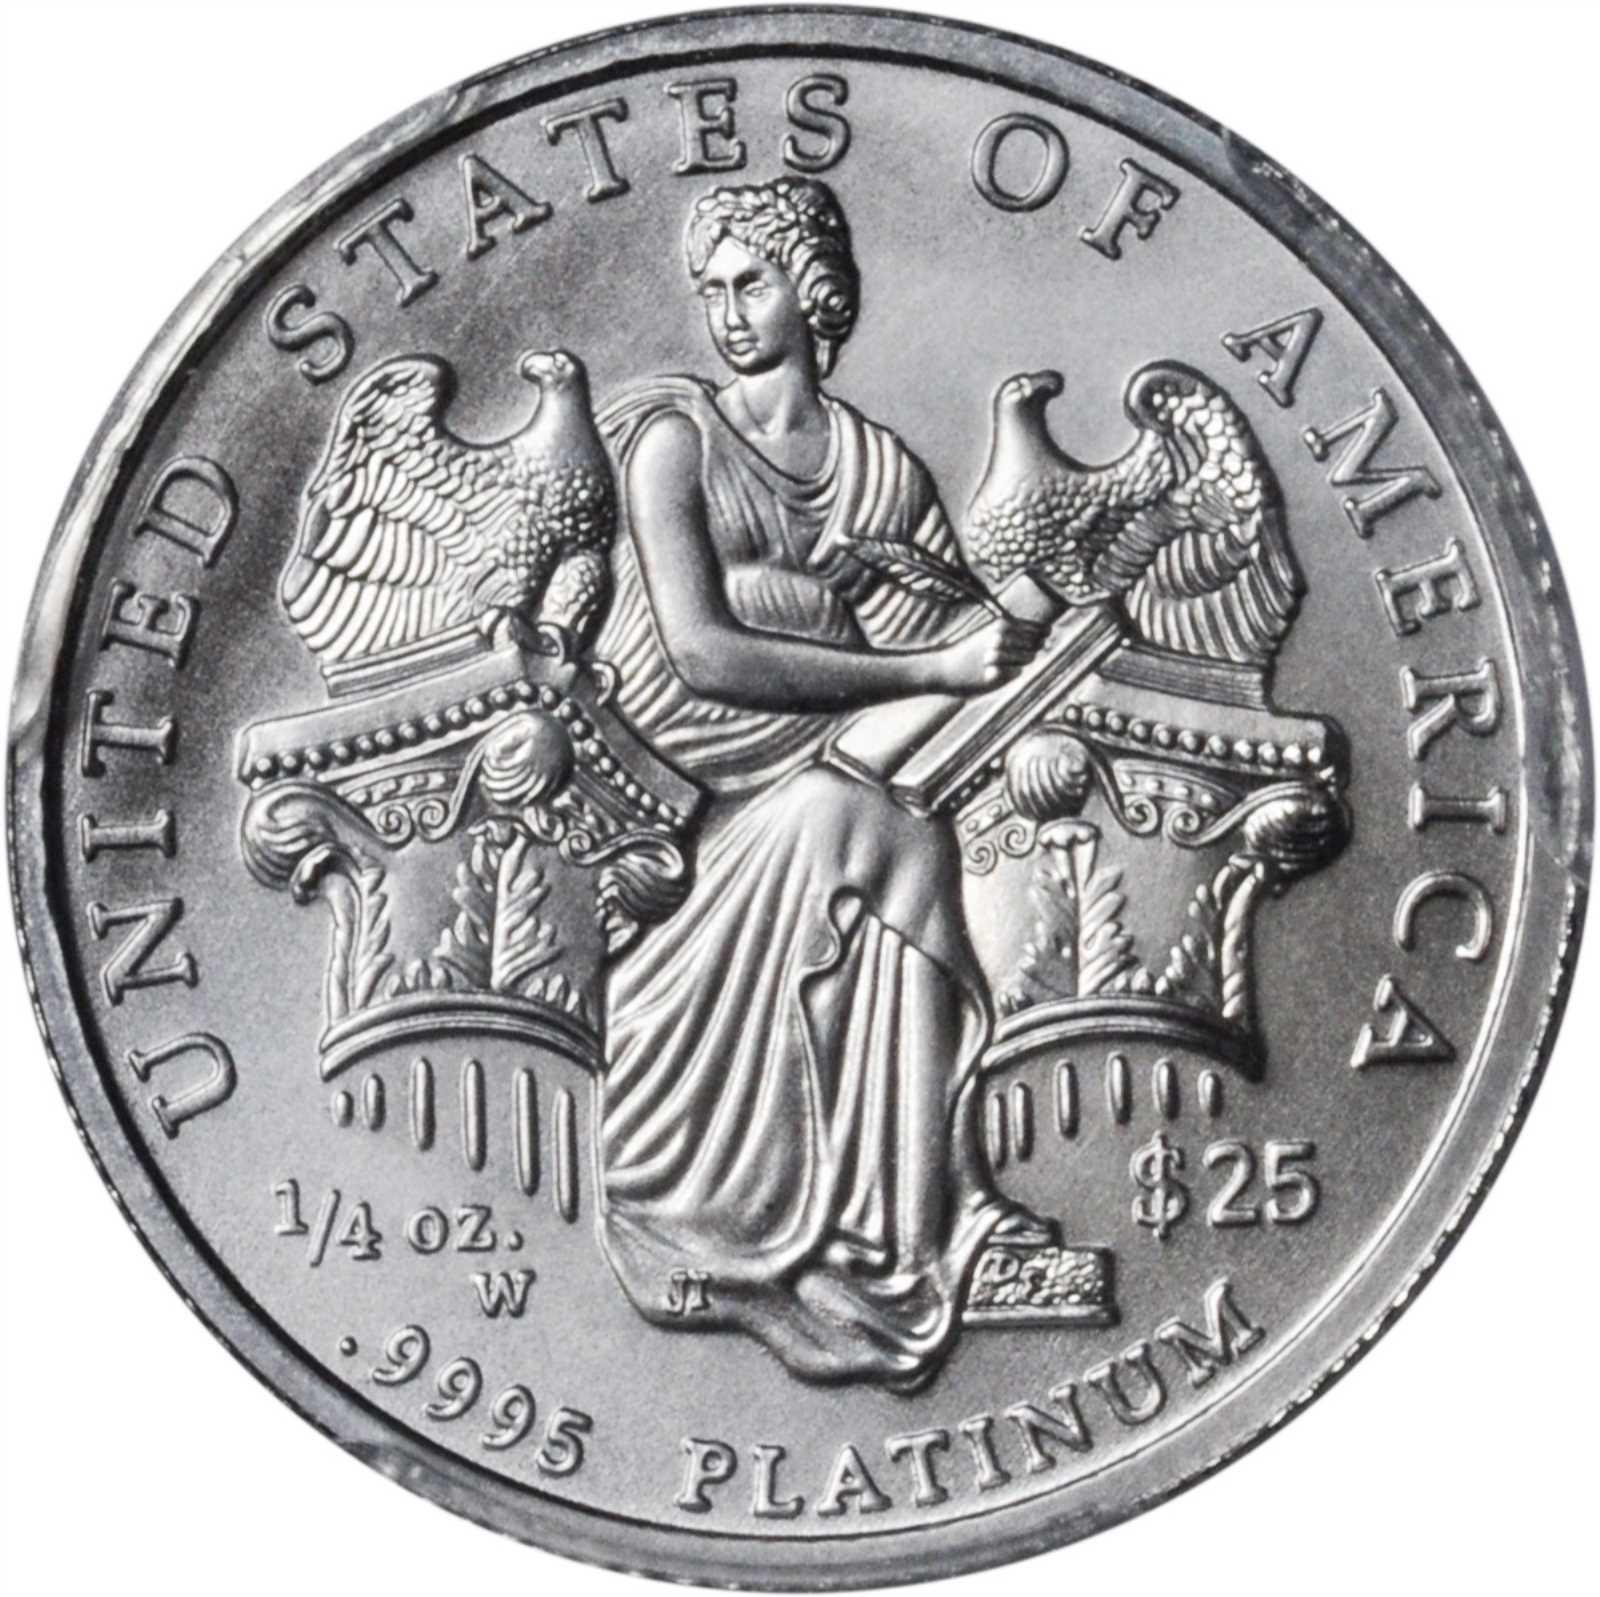 features symbolizing young carrying the her hope promise lady america pin perfection torch coin of platinum in s reverse liberty and